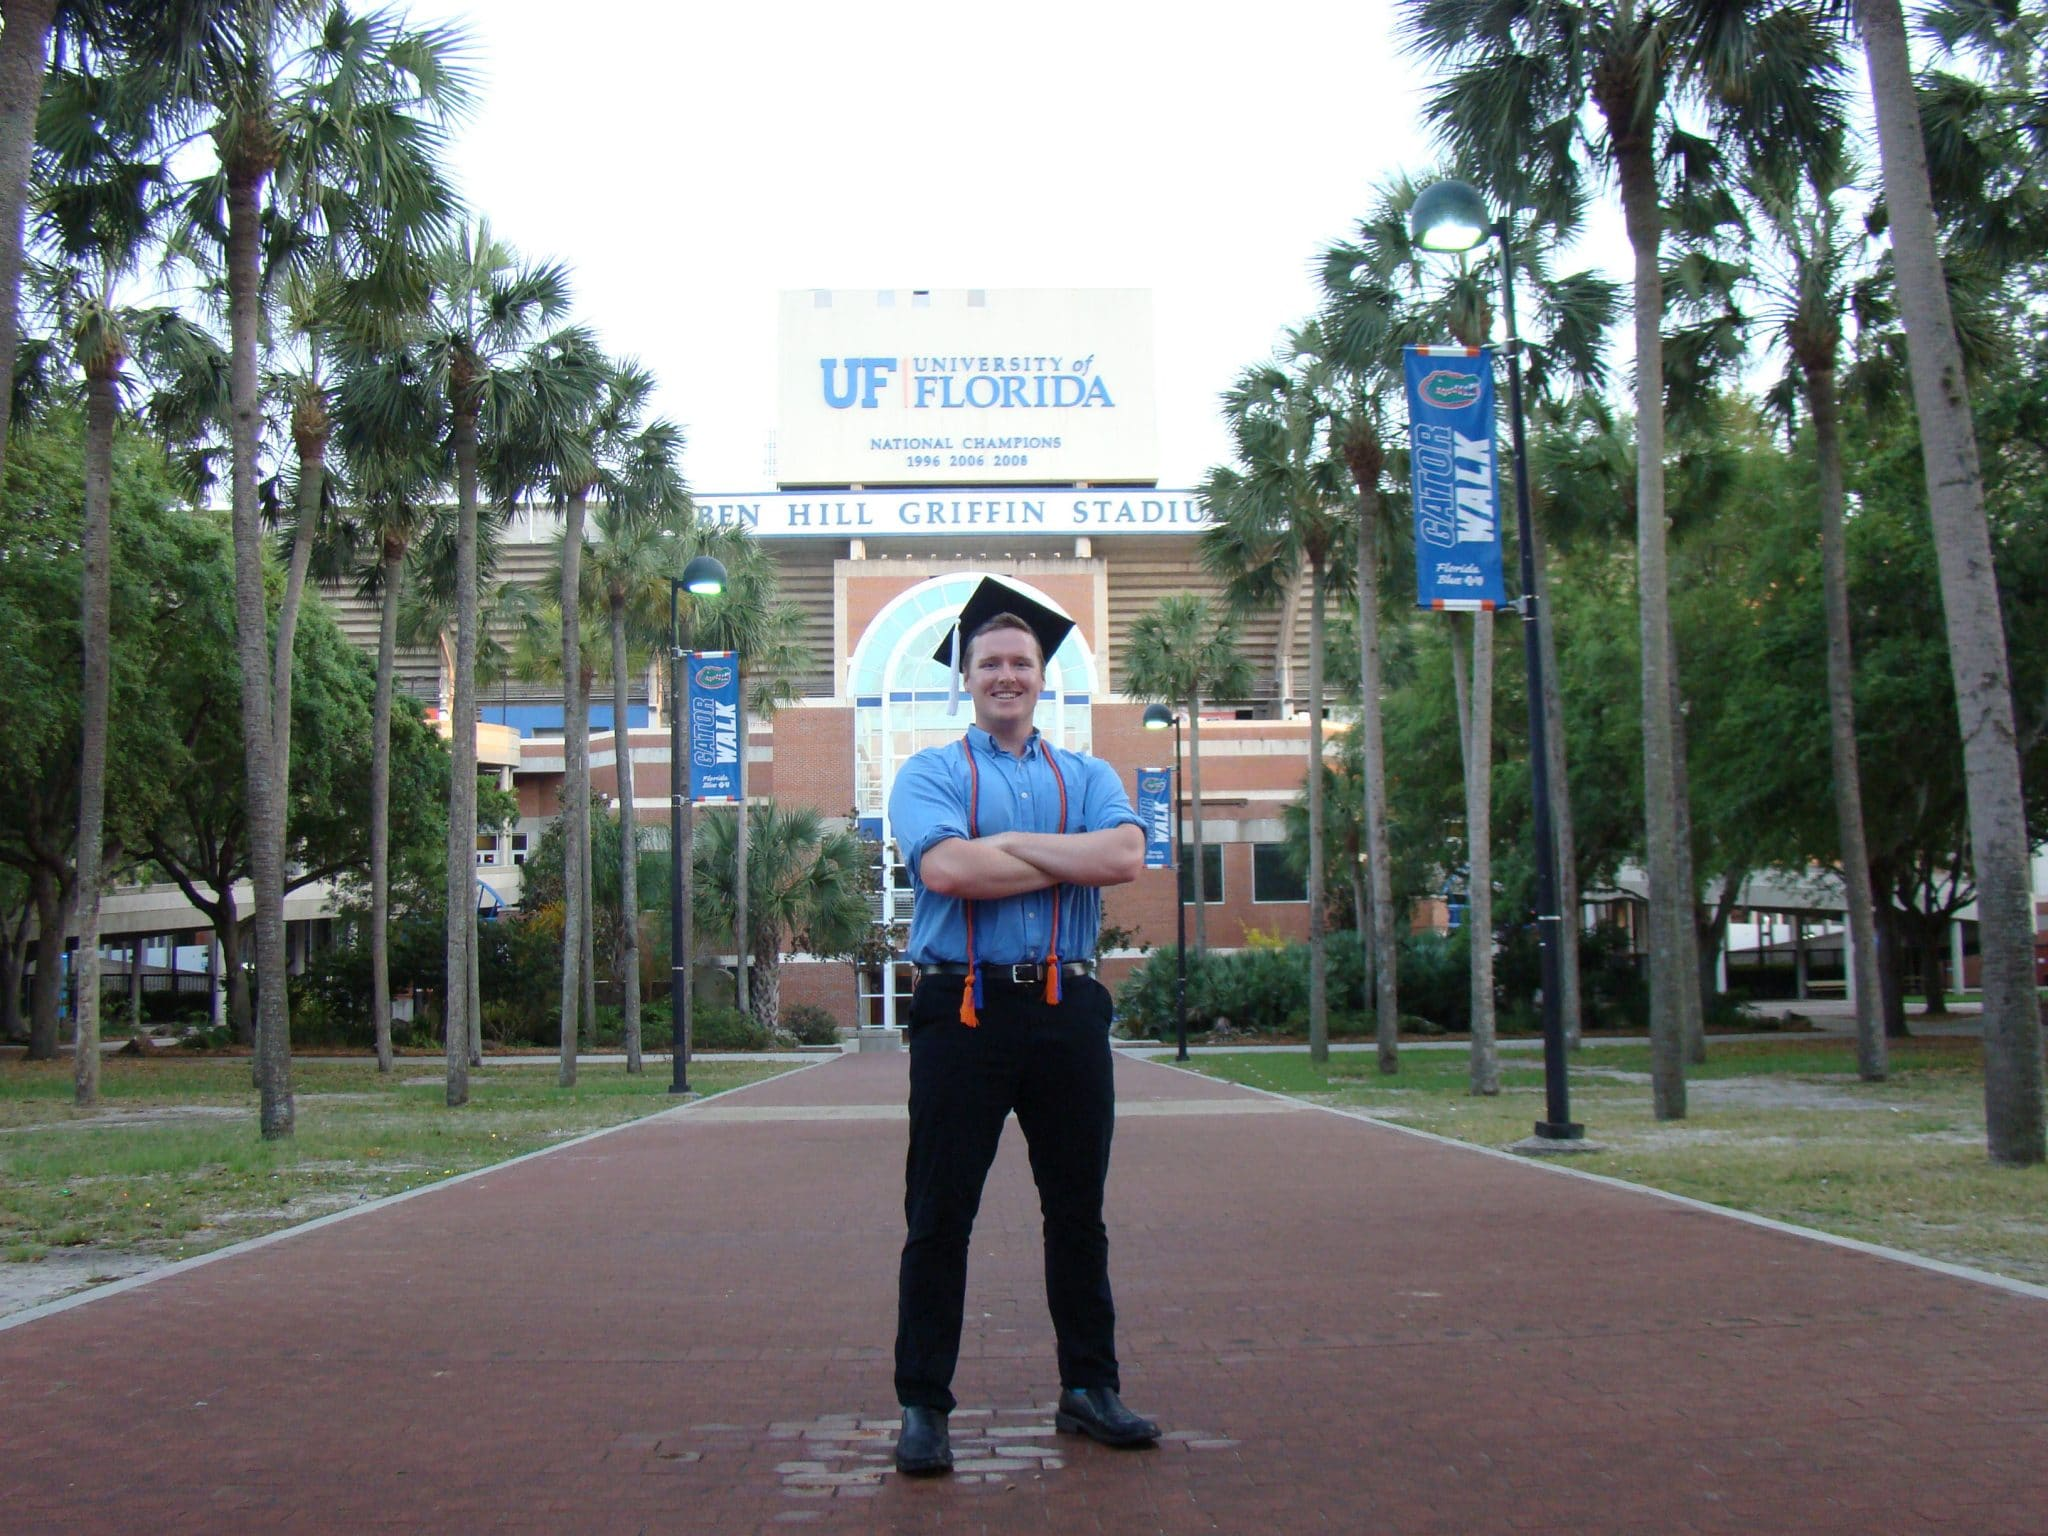 Jacob Schuster poses in his graduation cap in front of Ben Hill Griffin Stadium.